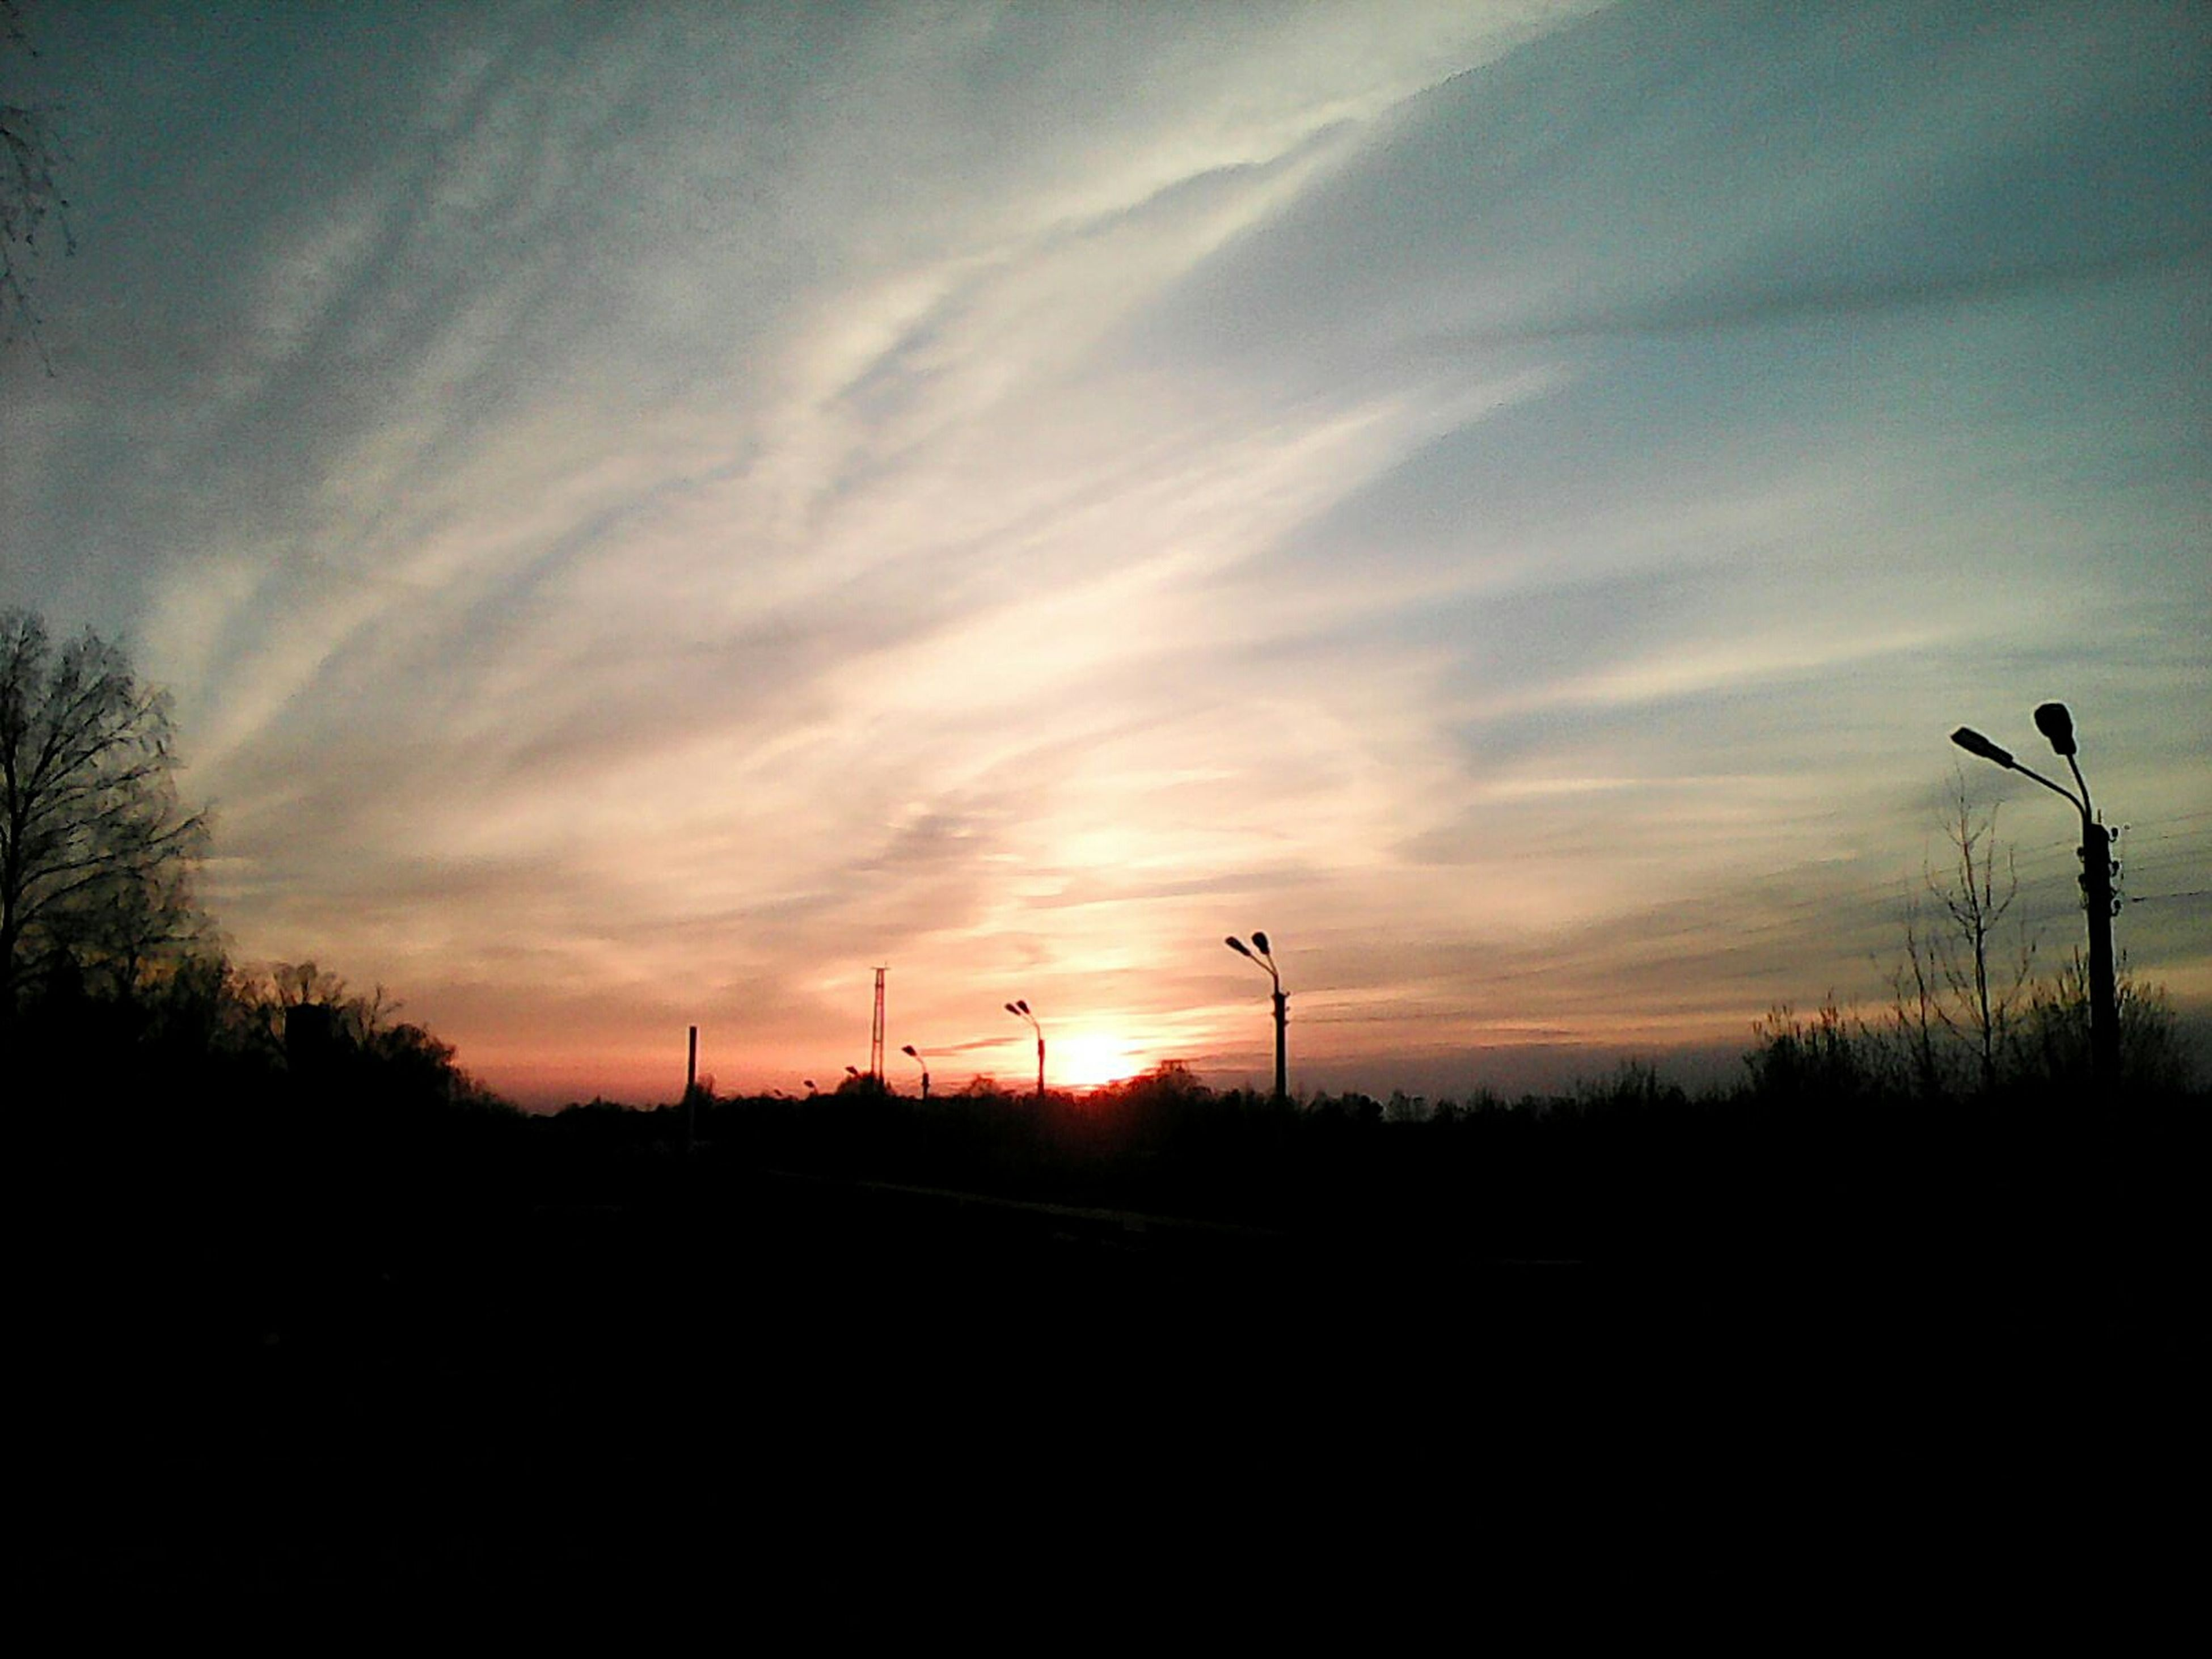 sunset, sky, silhouette, tree, no people, cloud - sky, nature, outdoors, beauty in nature, day